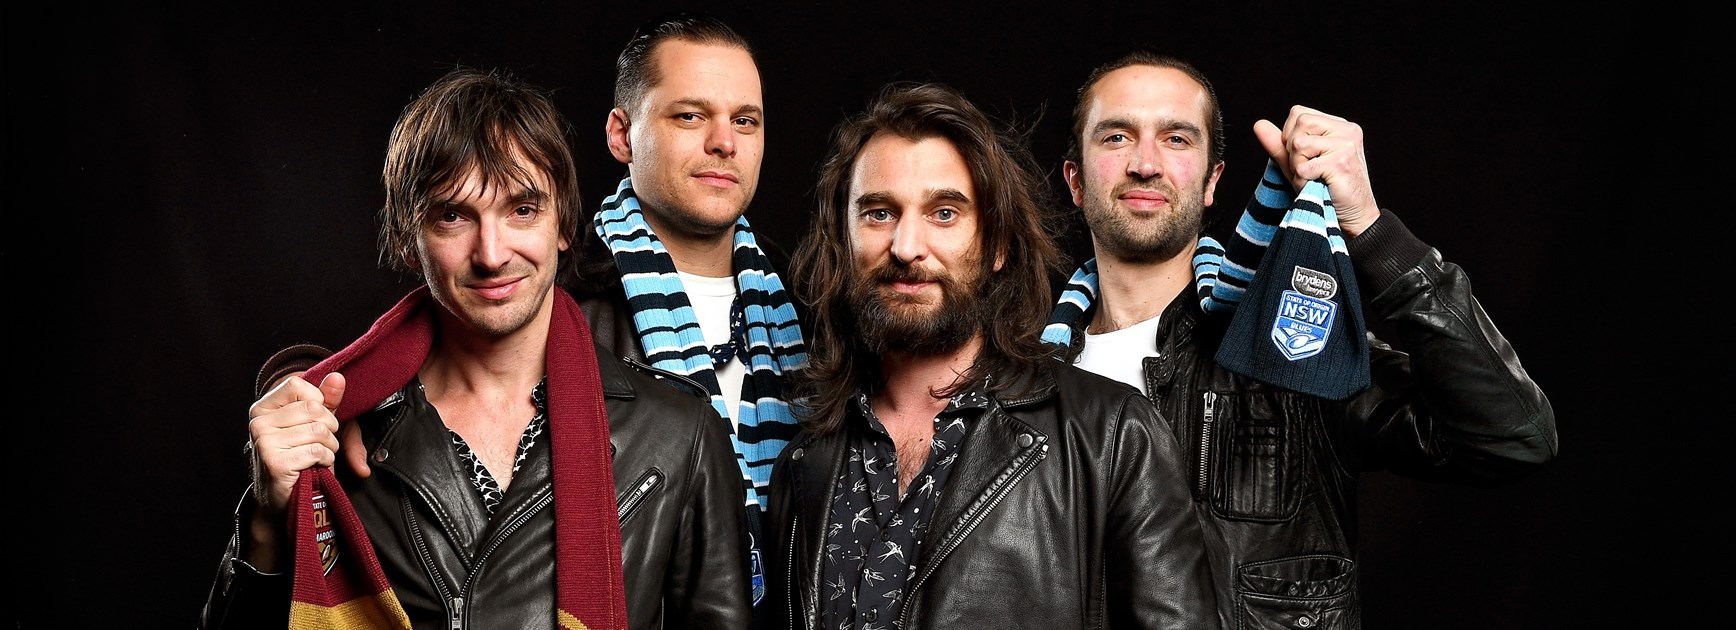 Jet to perform at State of Origin II